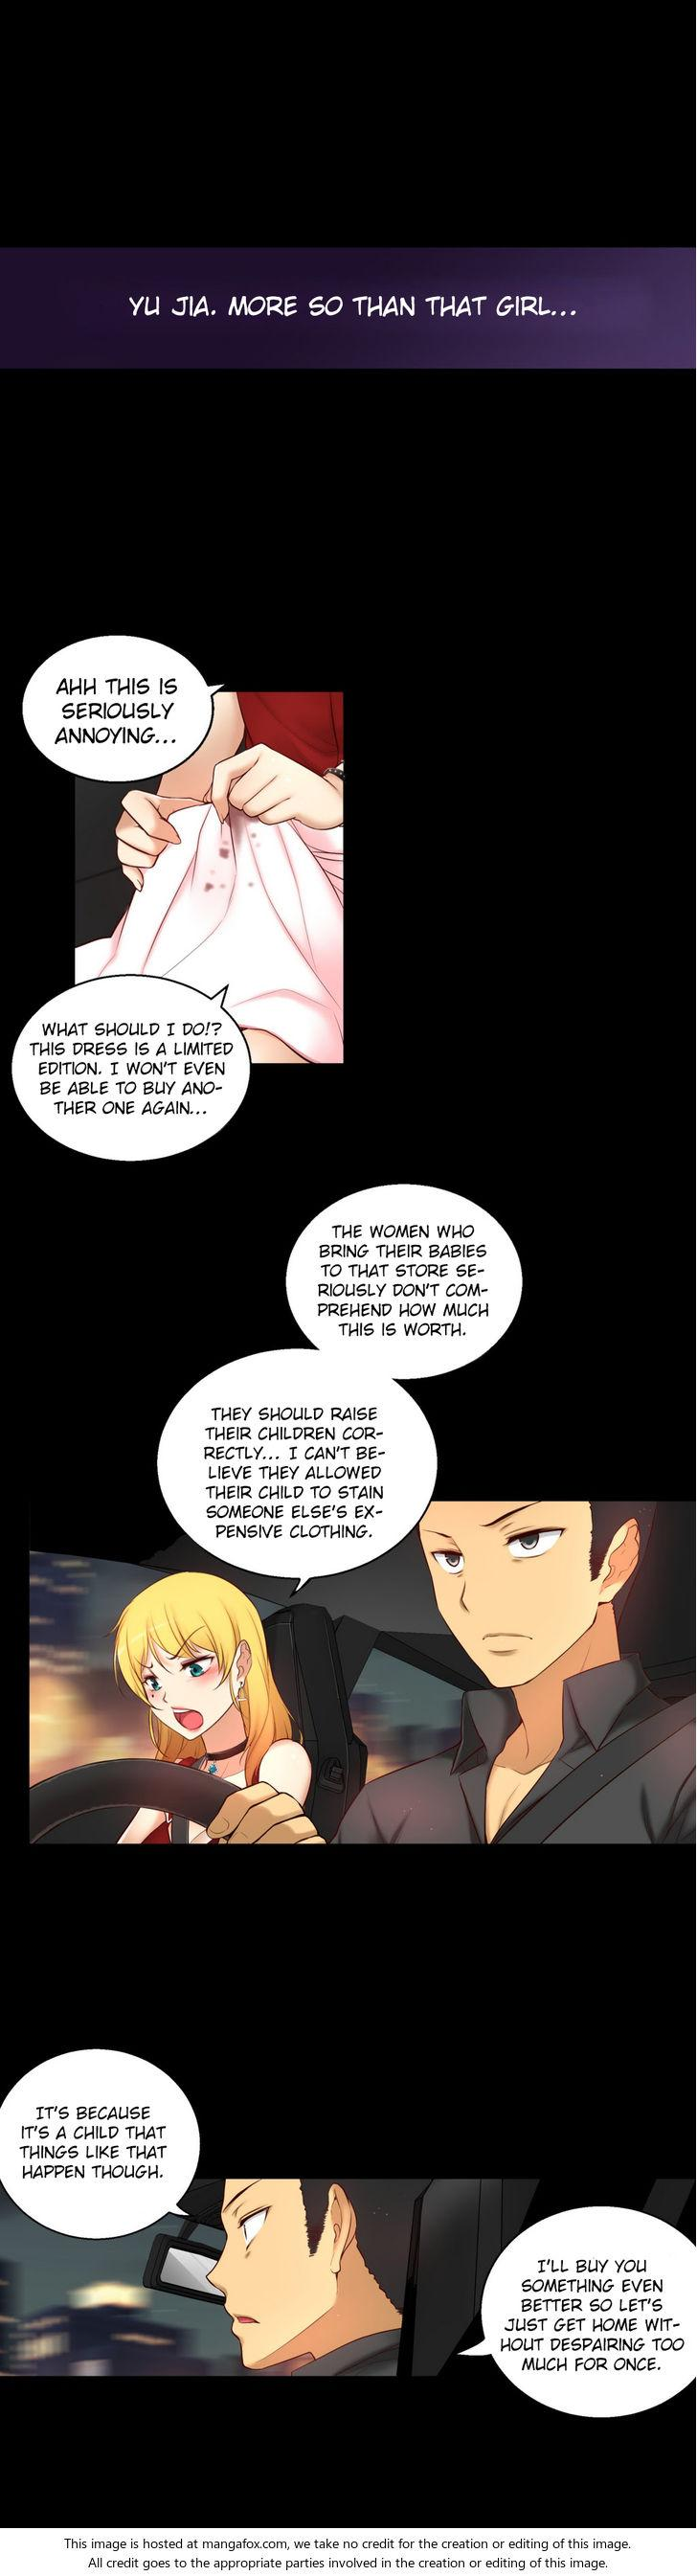 [Donggul Gom] She is Young (English) Part 1/2 1091